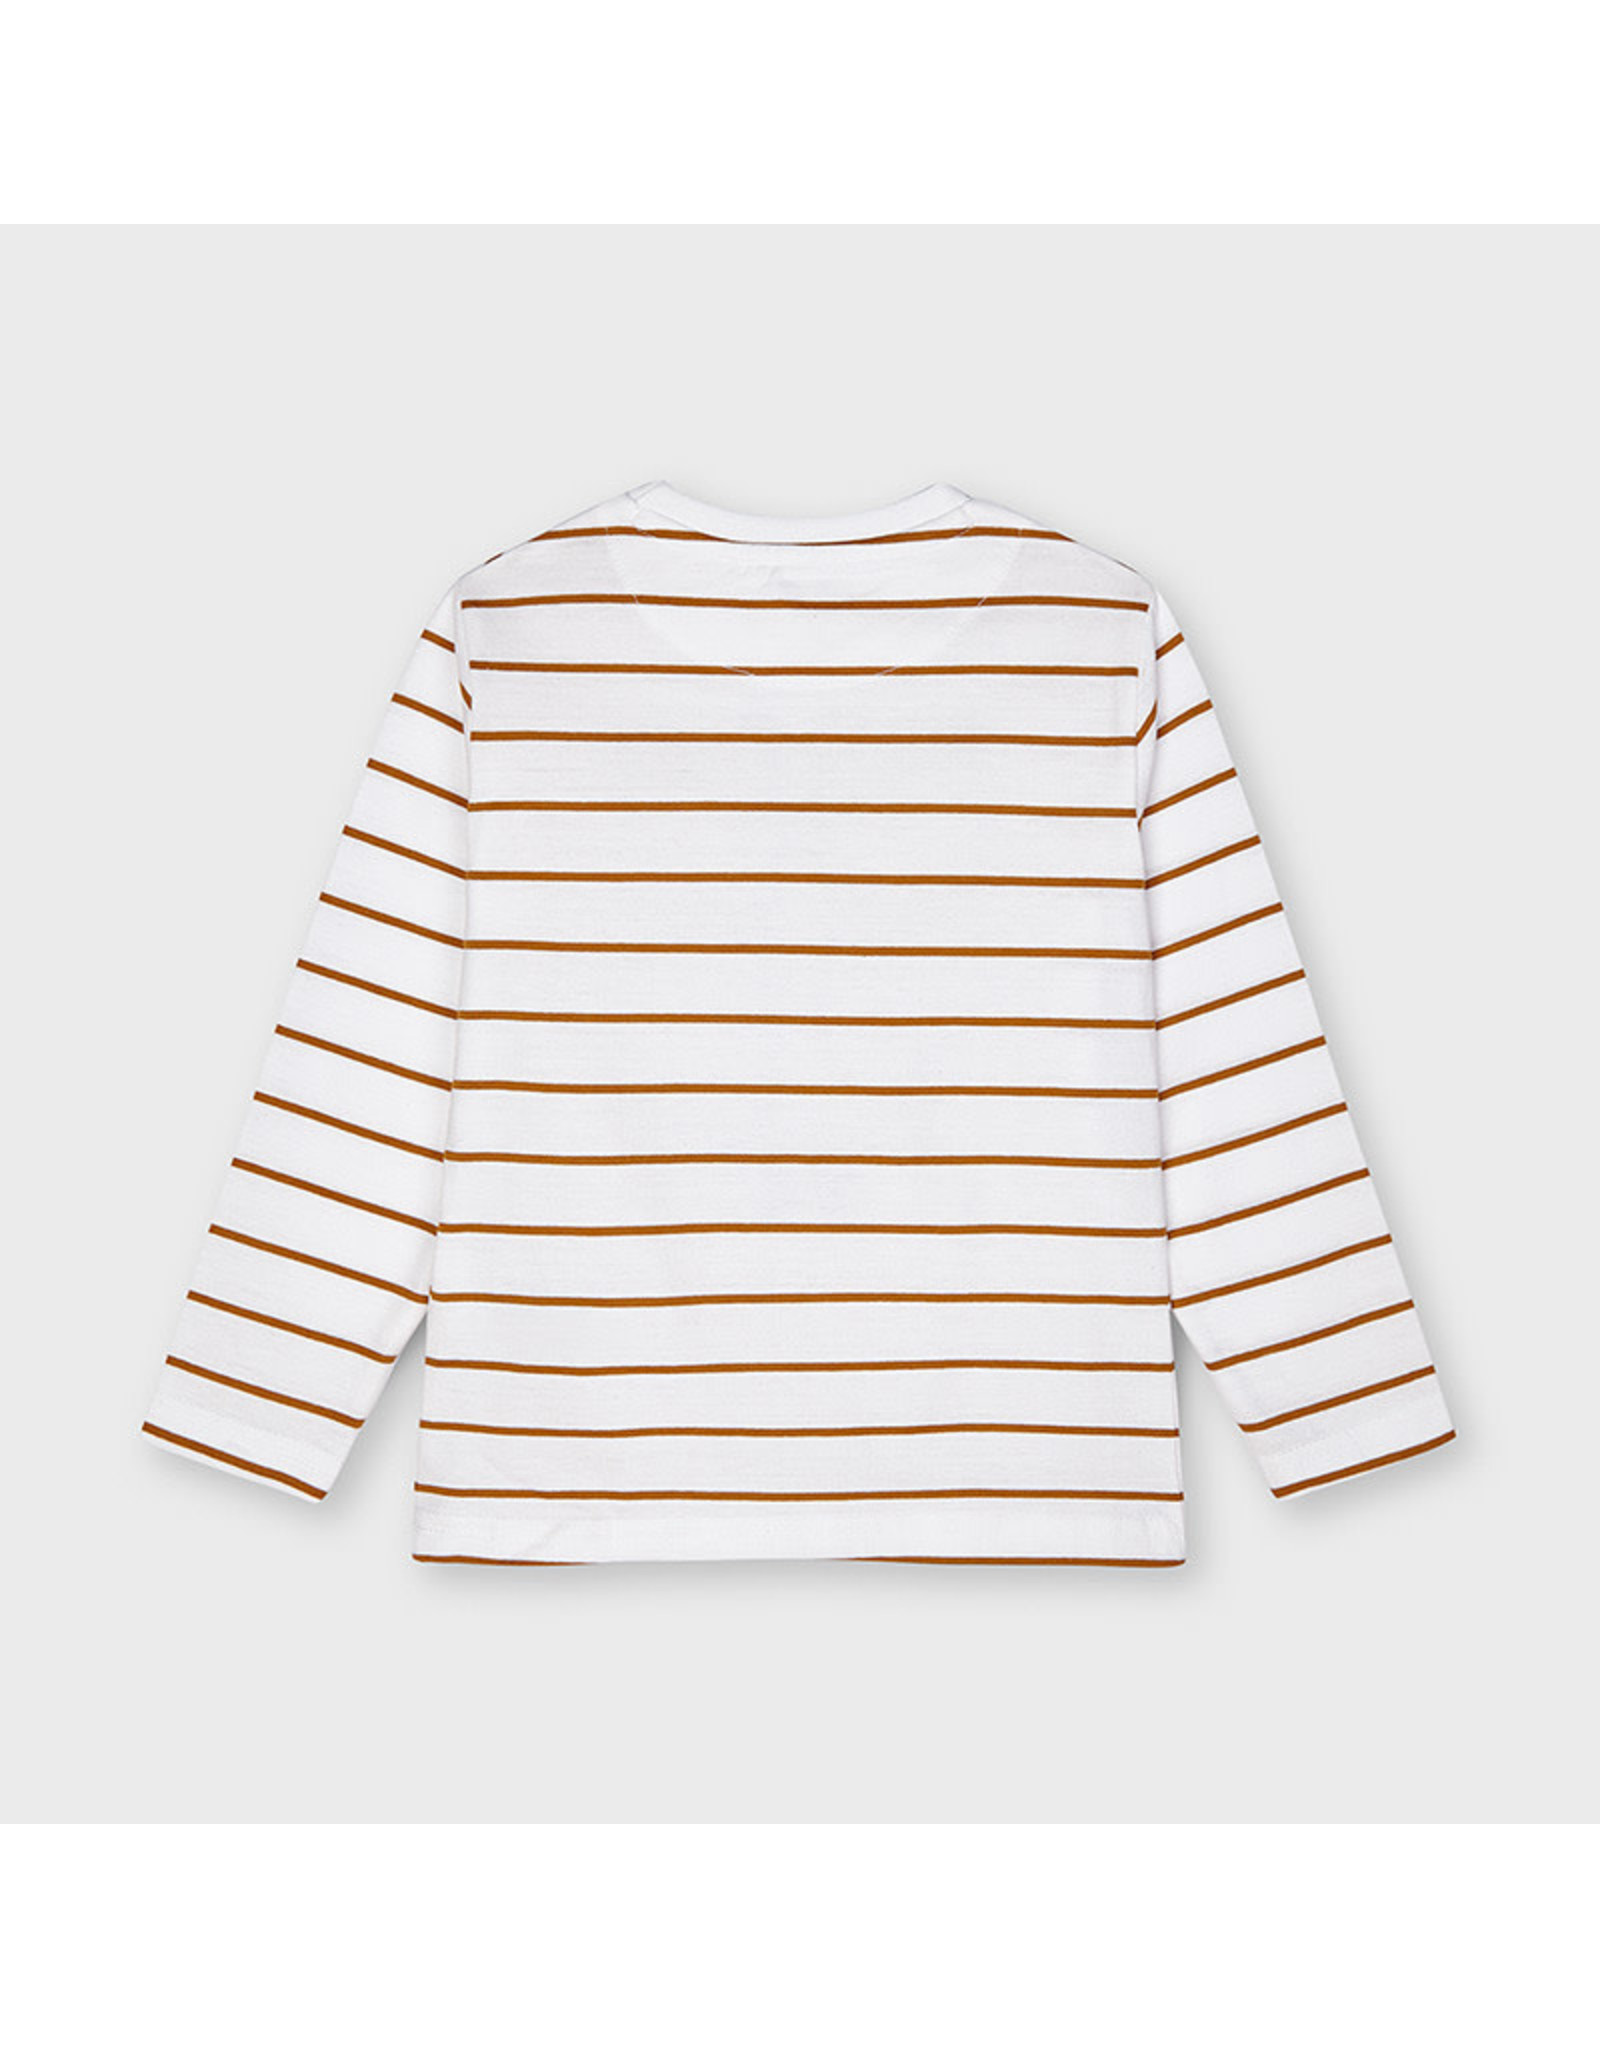 Mayoral Long Sleeve Striped T-Shirt